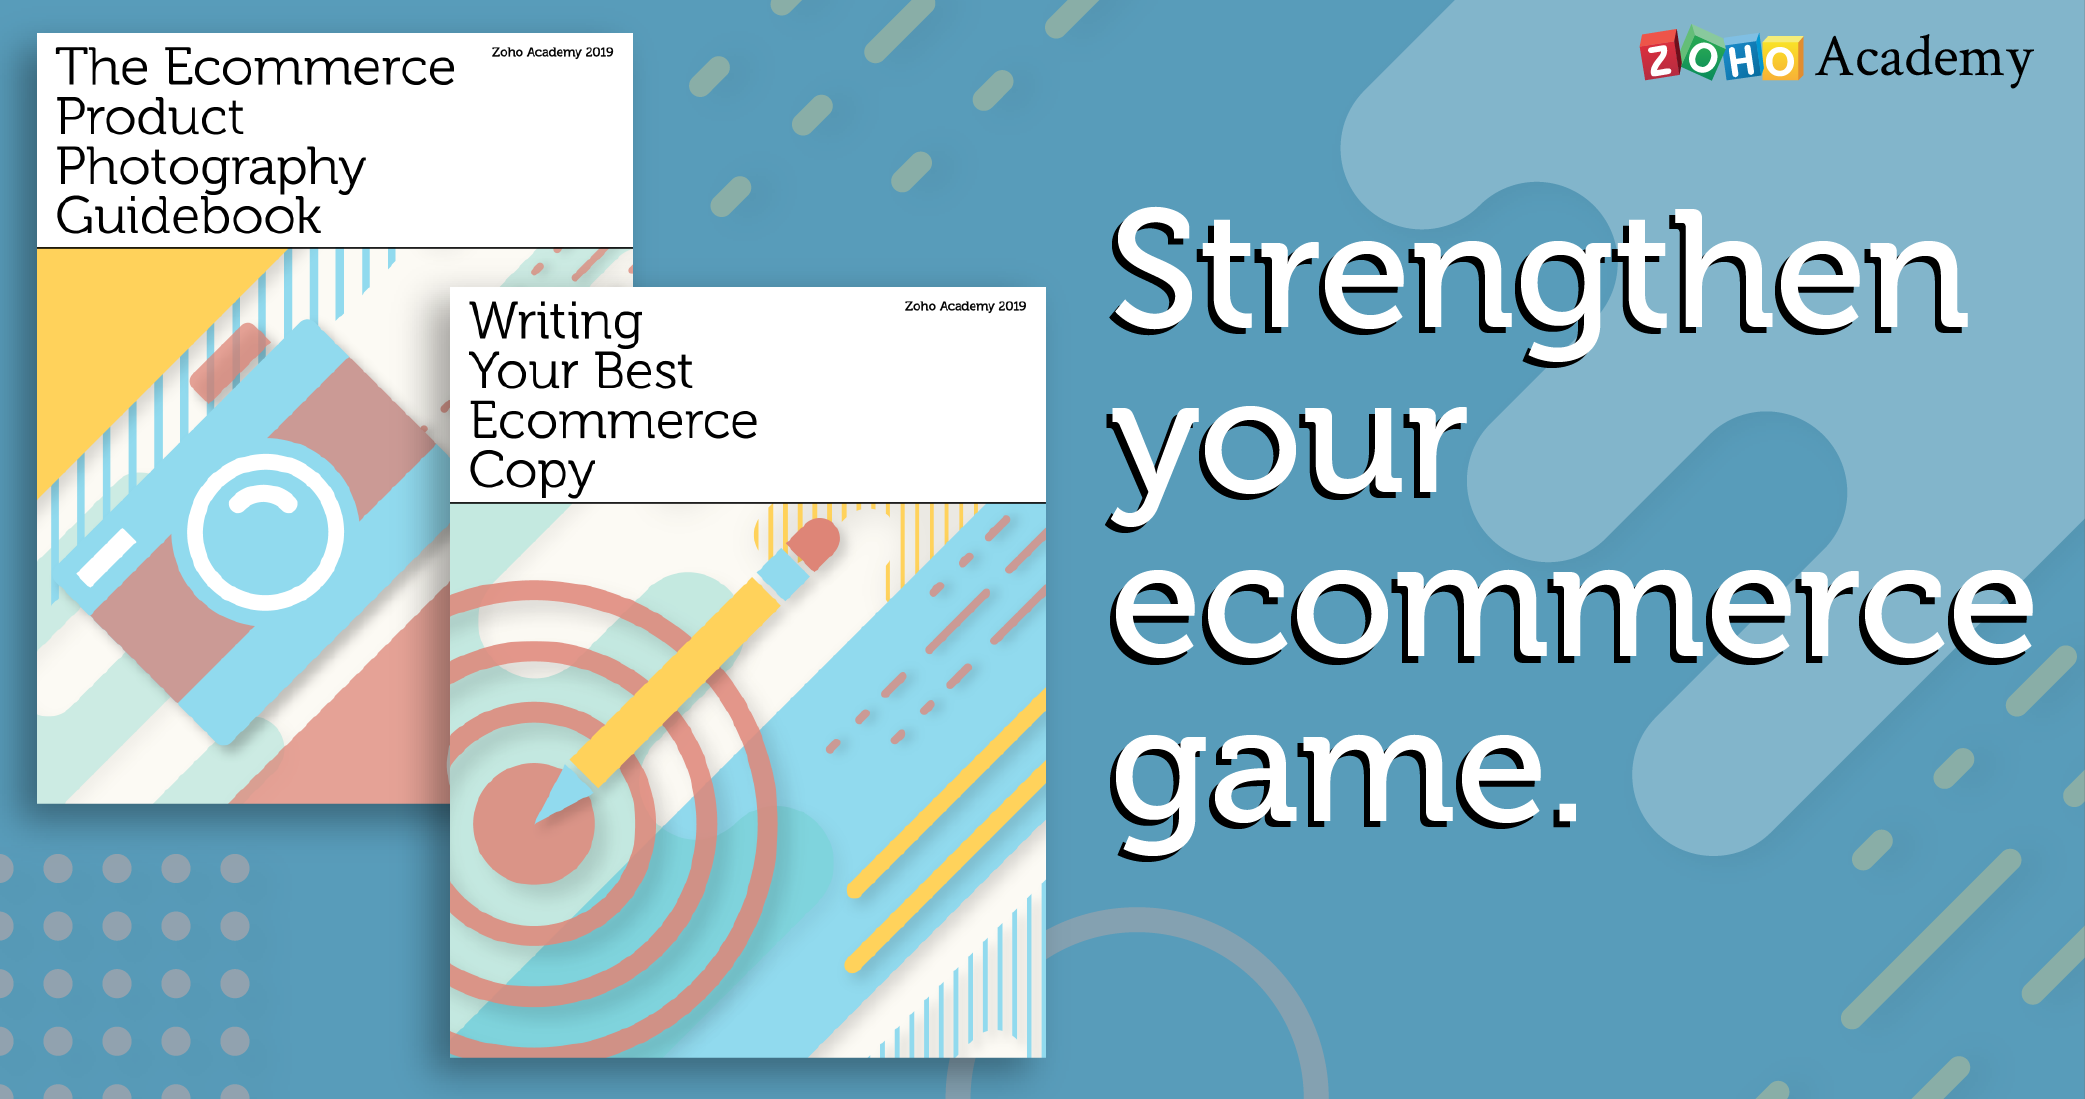 At Zoho Academy, We're Still Thinking about Your Ecommerce Site